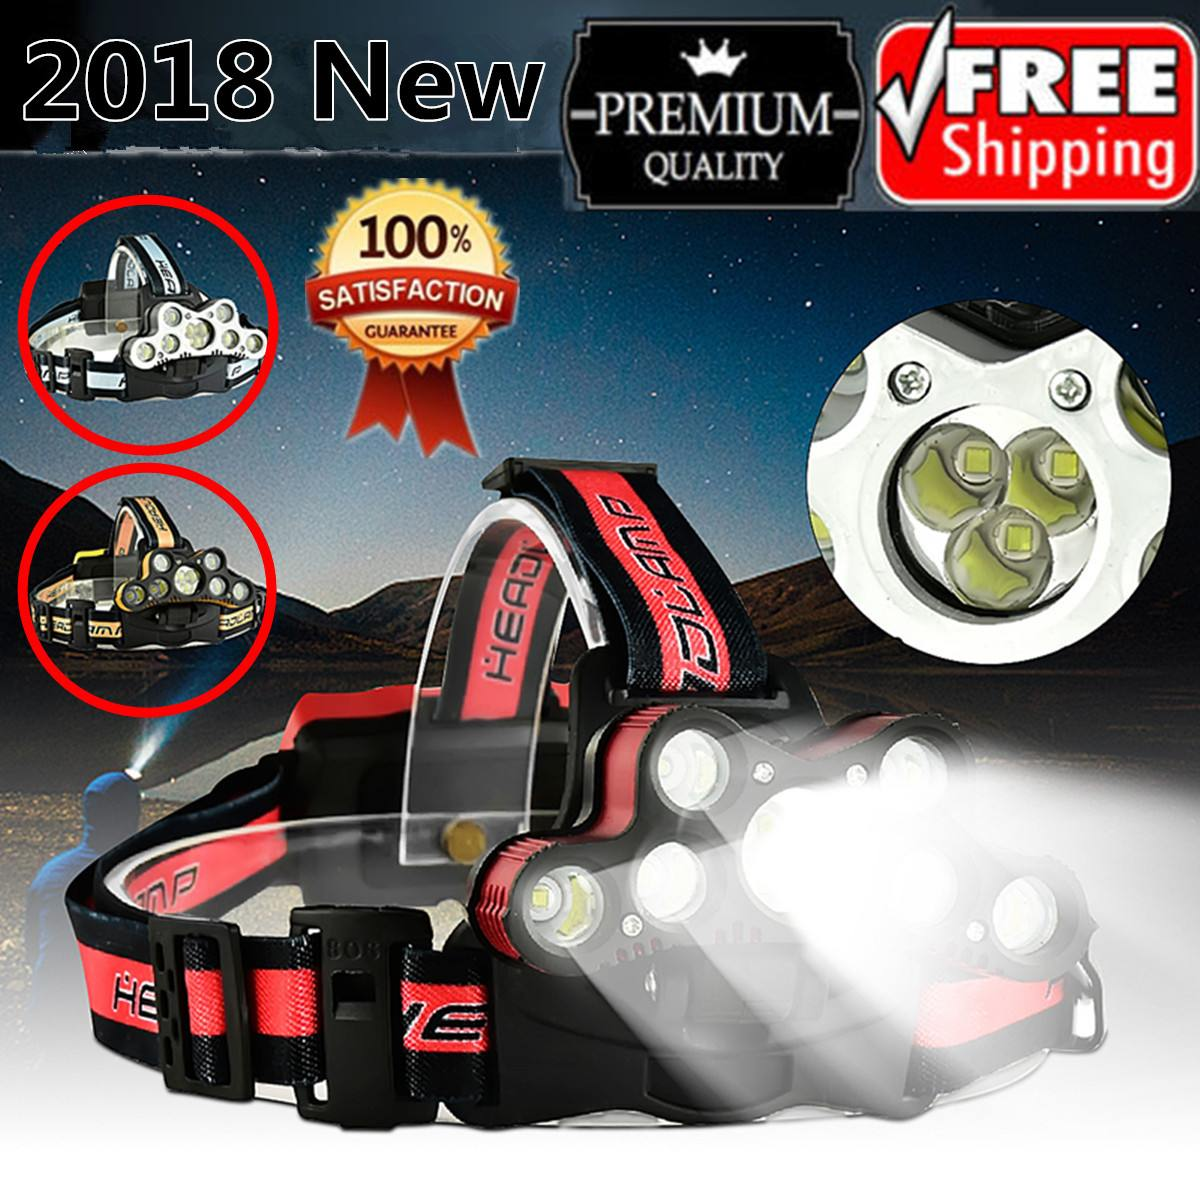 120000LM LED Smuxi headlamp 9*t6 headlight 6 modes head light waterproof flashlight zoomable hand touch use 18650 120000LM LED Smuxi headlamp 9*t6 headlight 6 modes head light waterproof flashlight zoomable hand touch use 18650